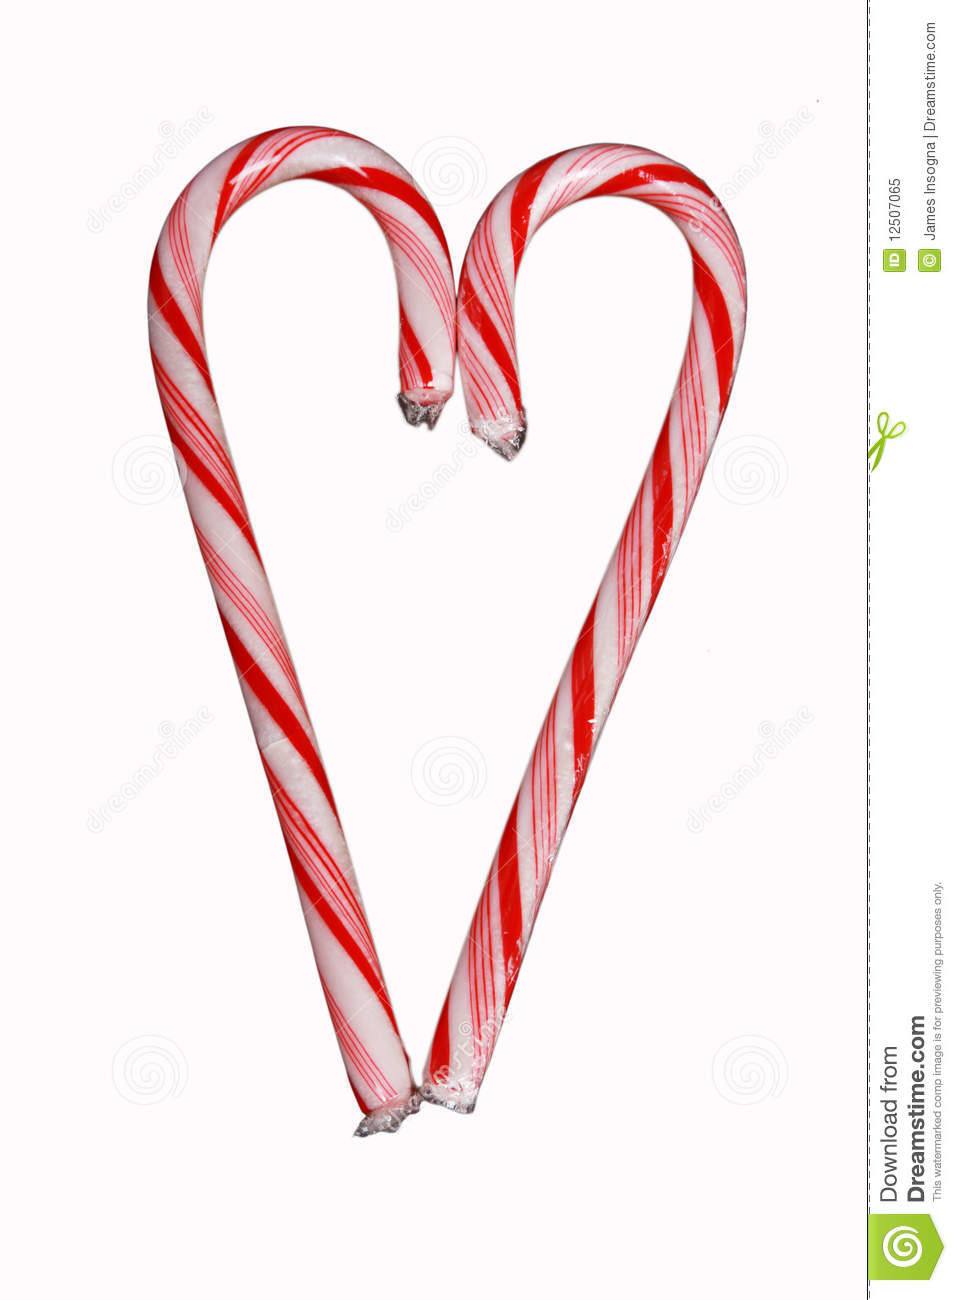 Candy Cane Heart Clipart Candy cane heart isolated on